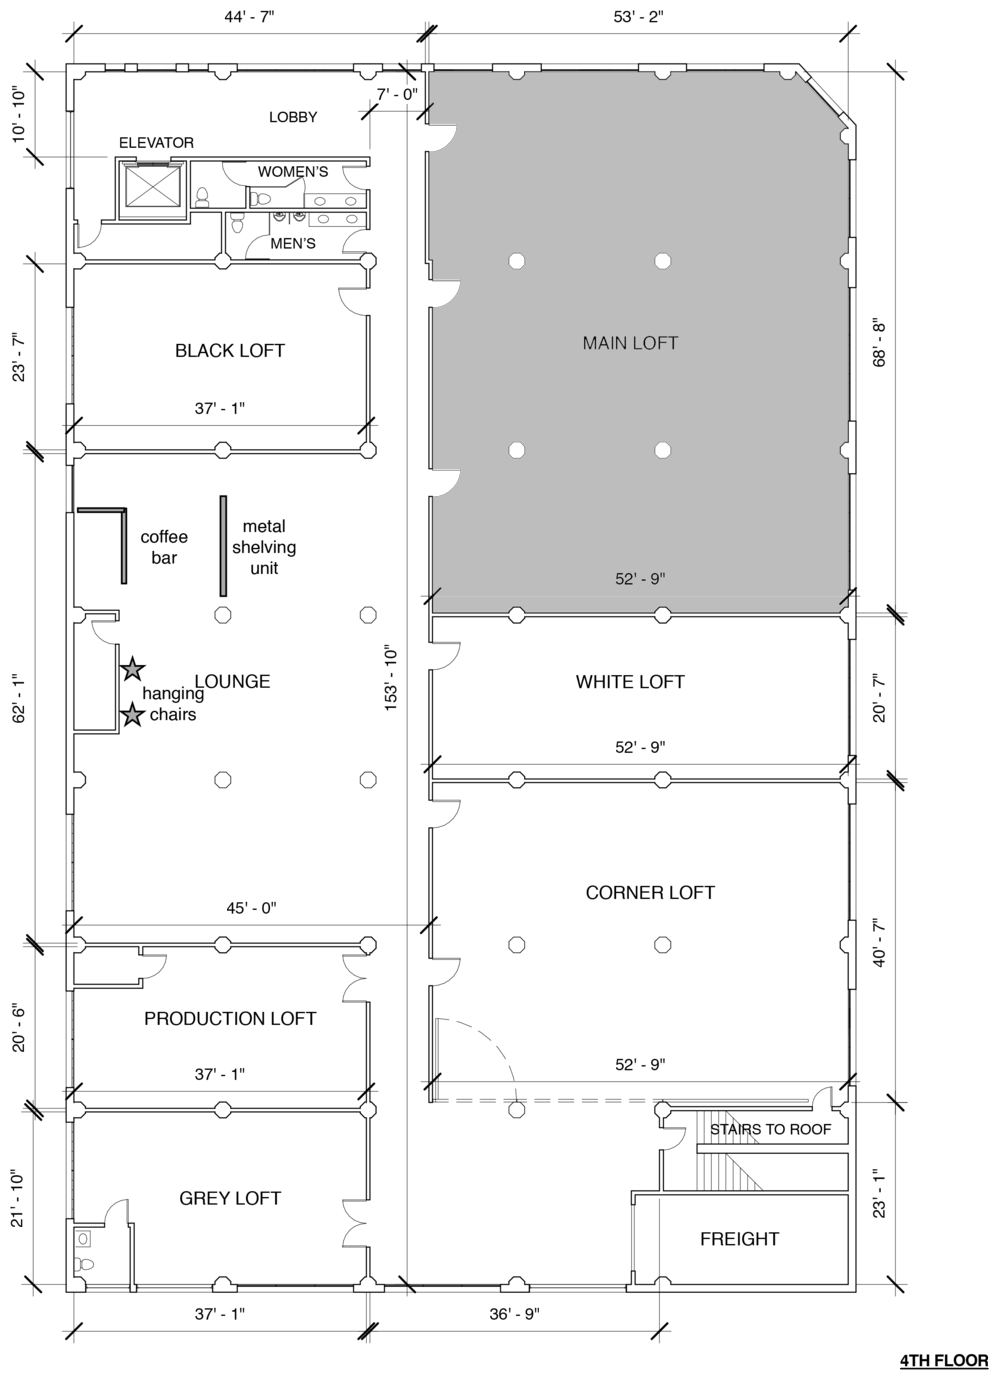 4thFloor_Schematic_HL-shelving copy-ML.png